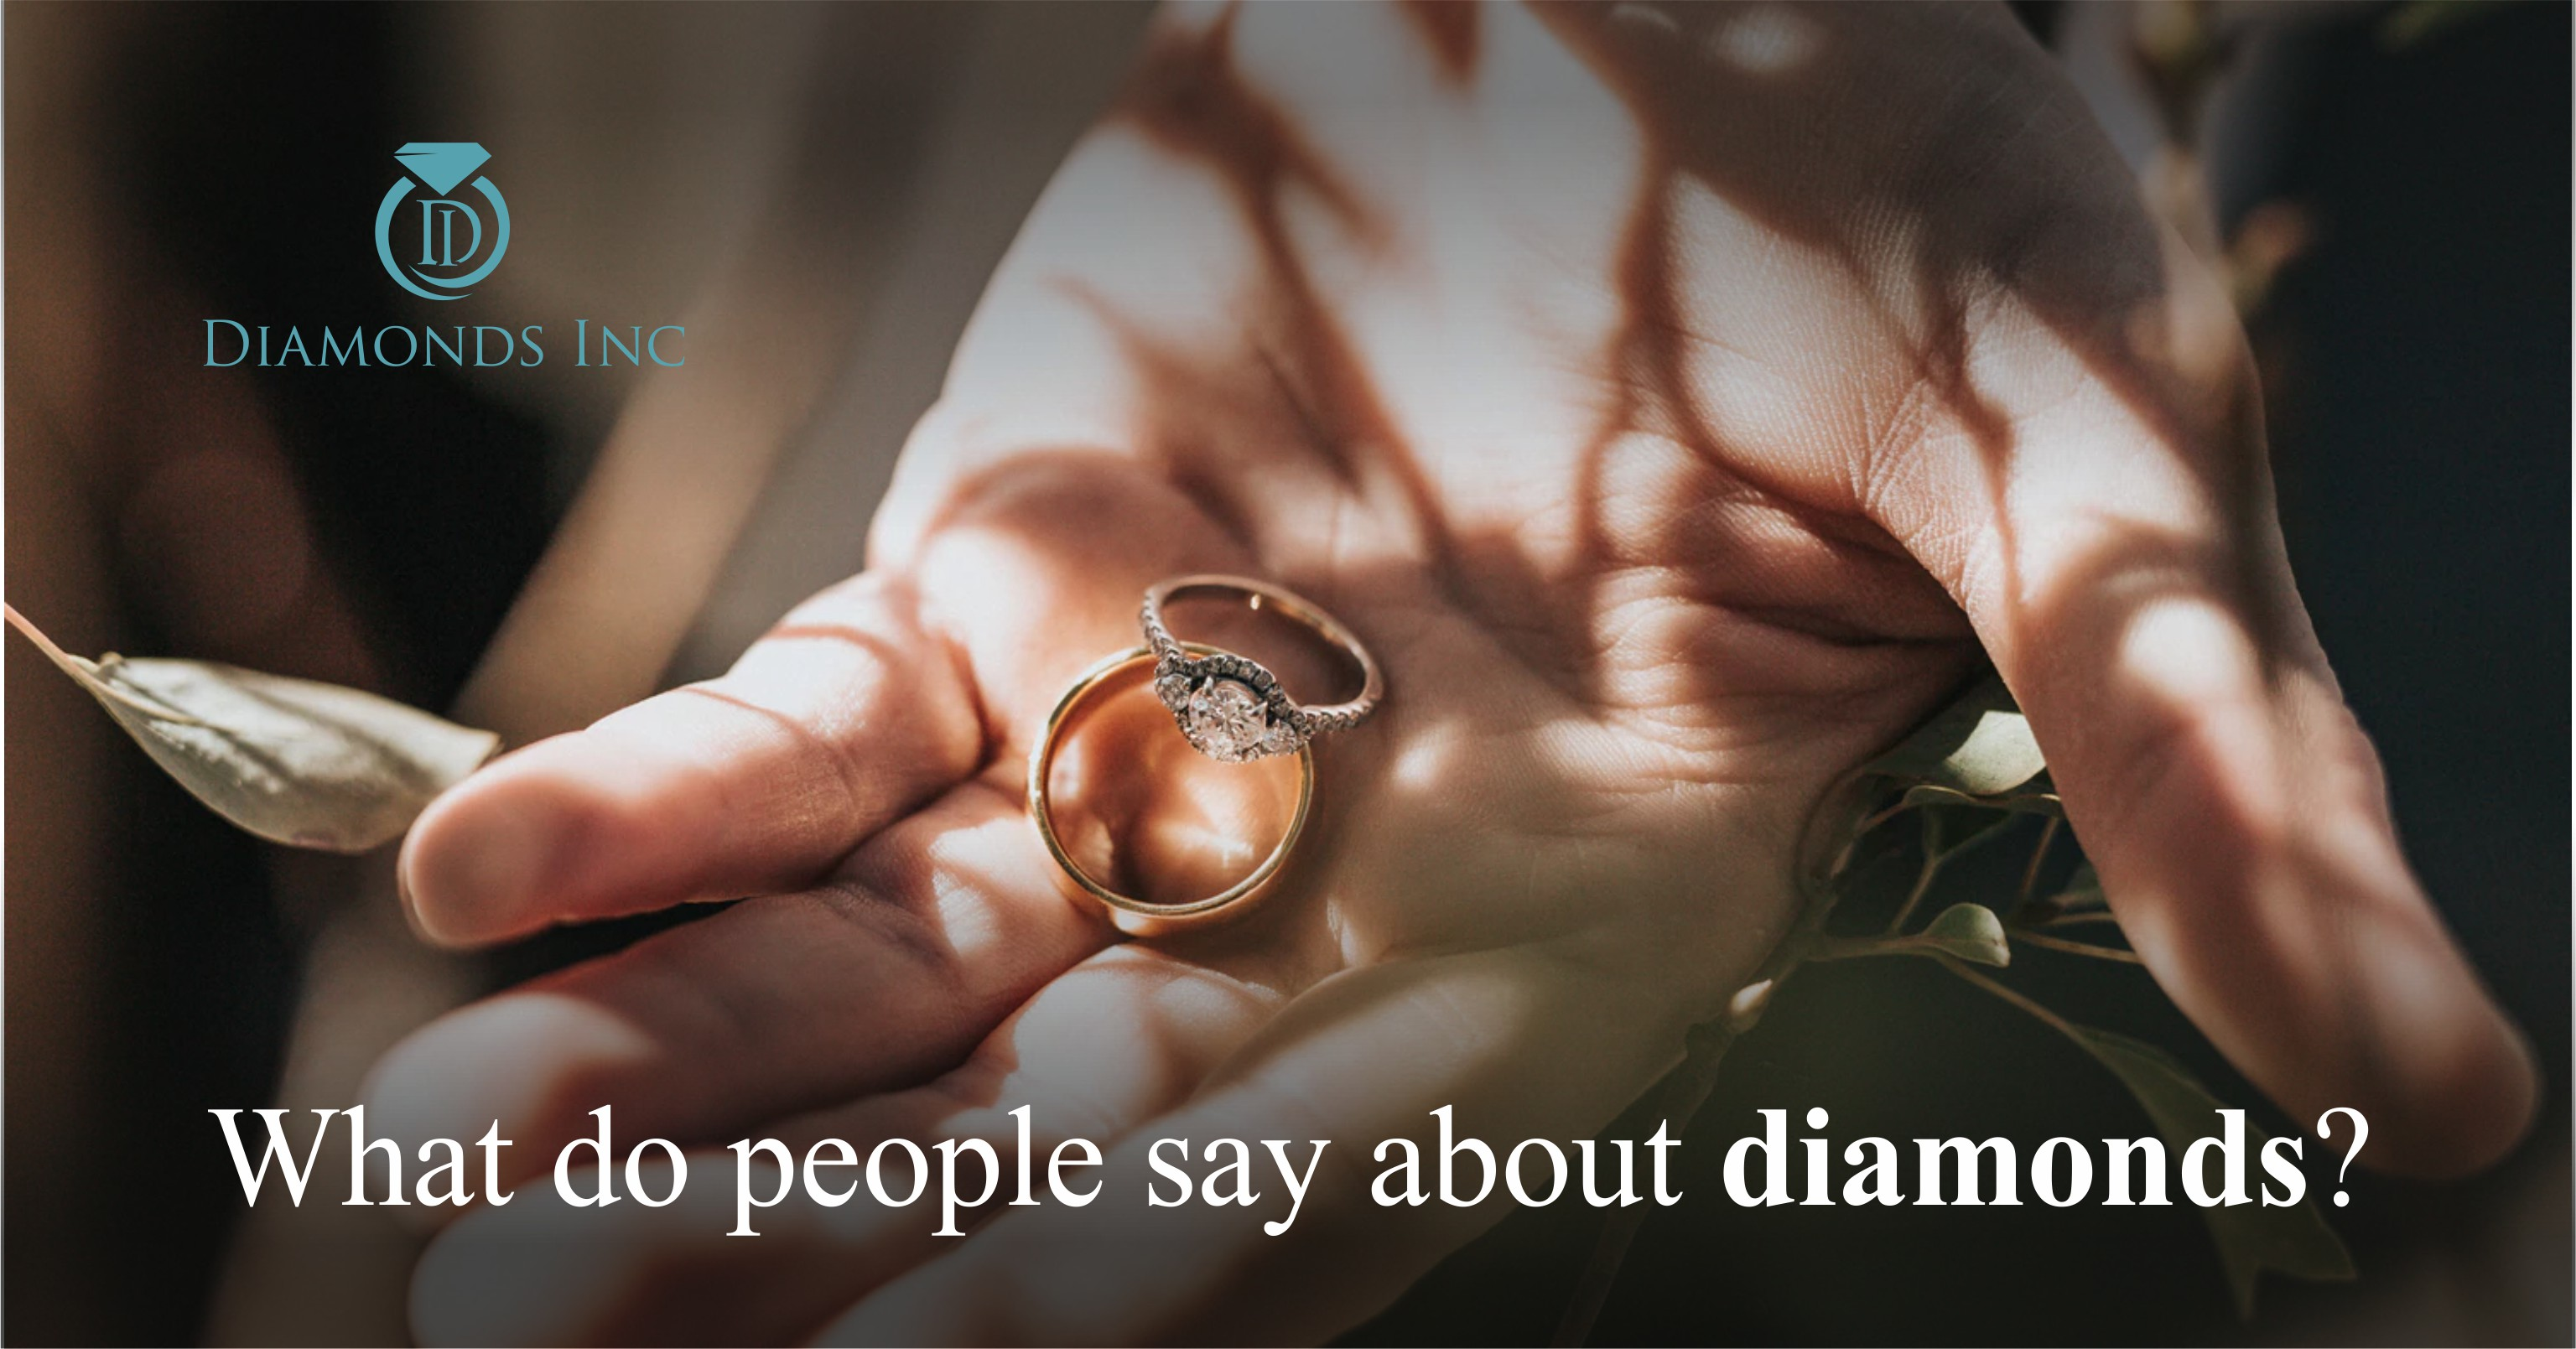 What people say about diamonds?